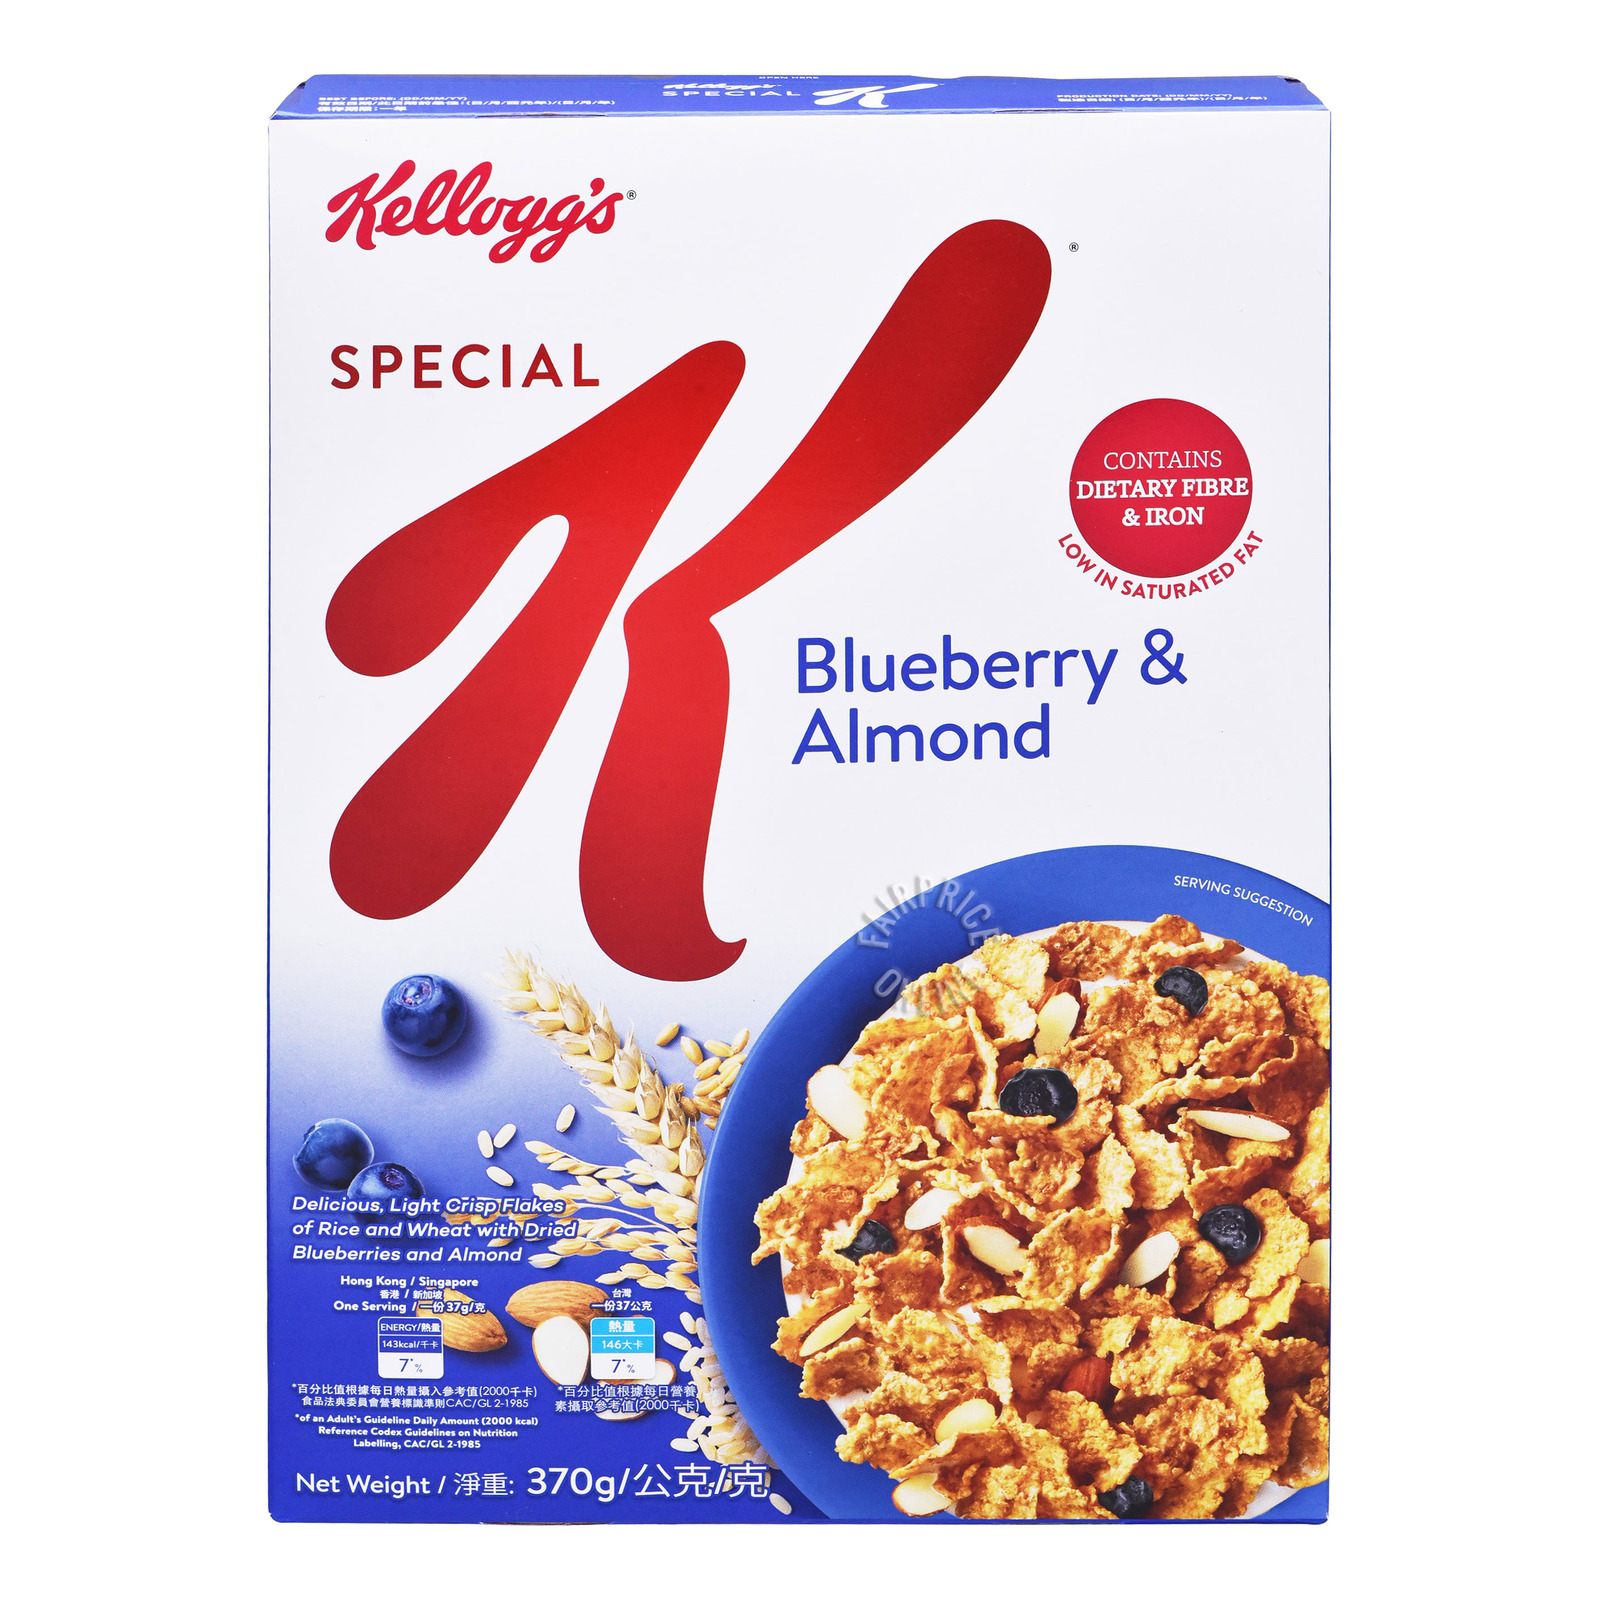 Kellogg's Special K Cereal - Blueberry & Almond